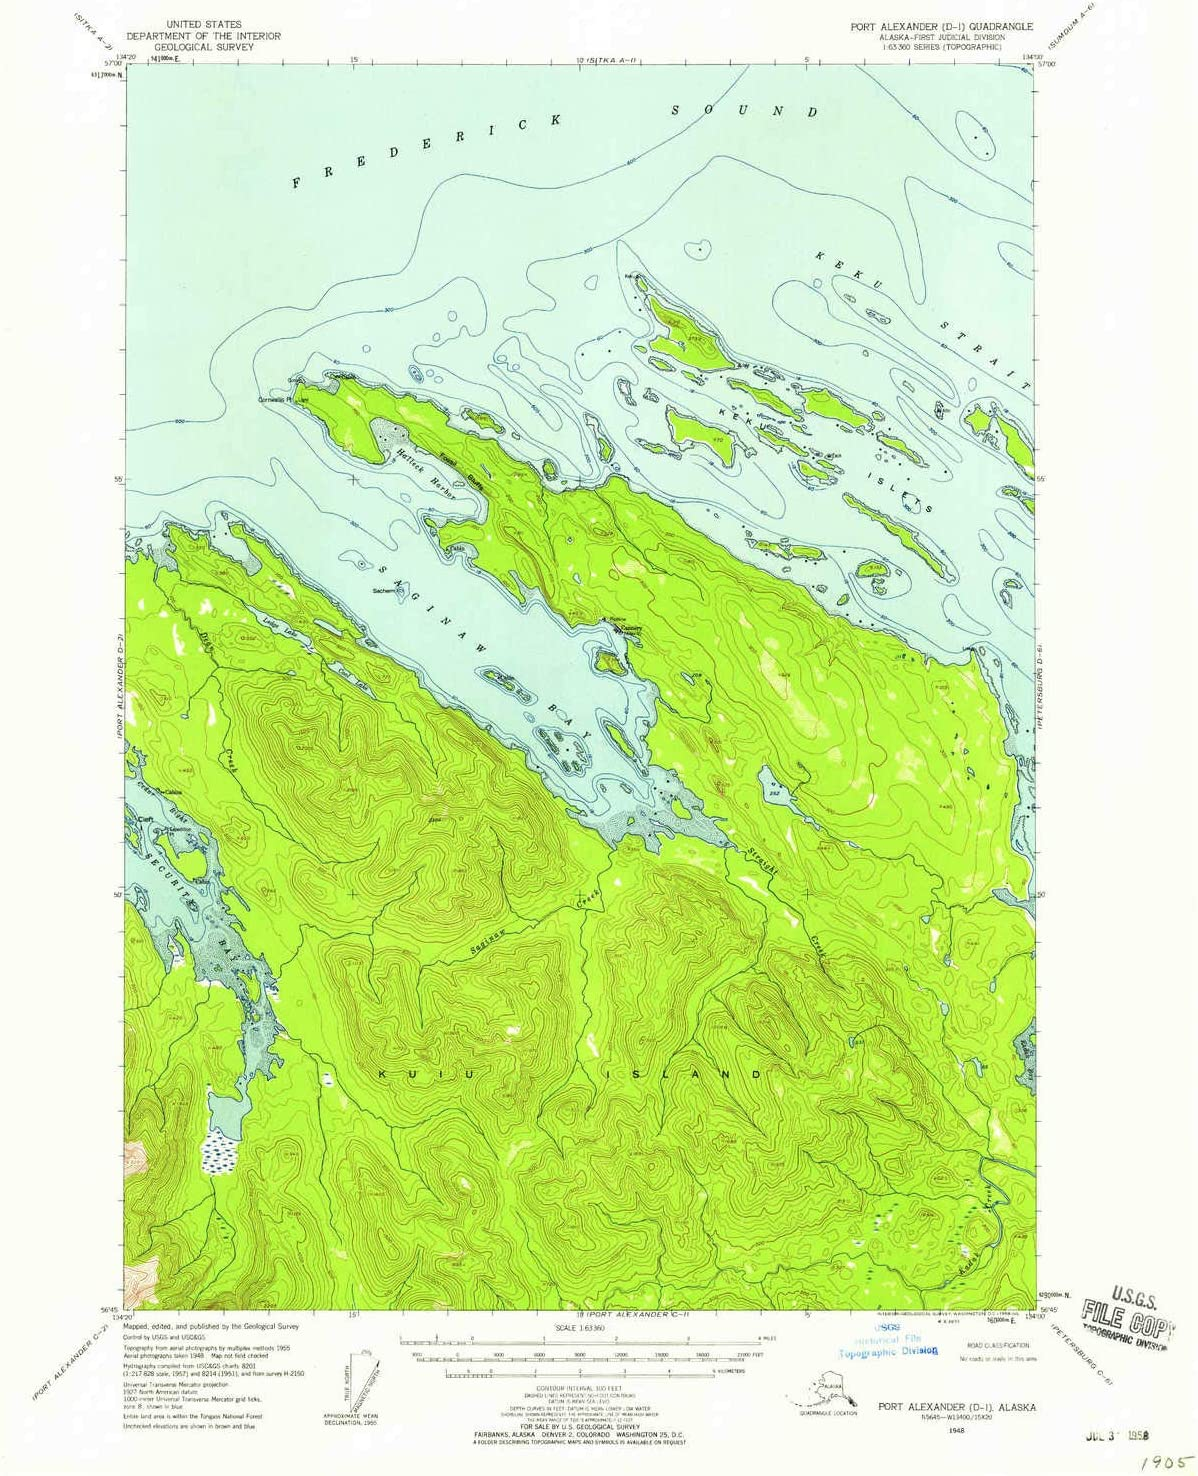 Over item handling YellowMaps Port Alexander D 1 AK map Scale Max 43% OFF X 1:63360 topo 15